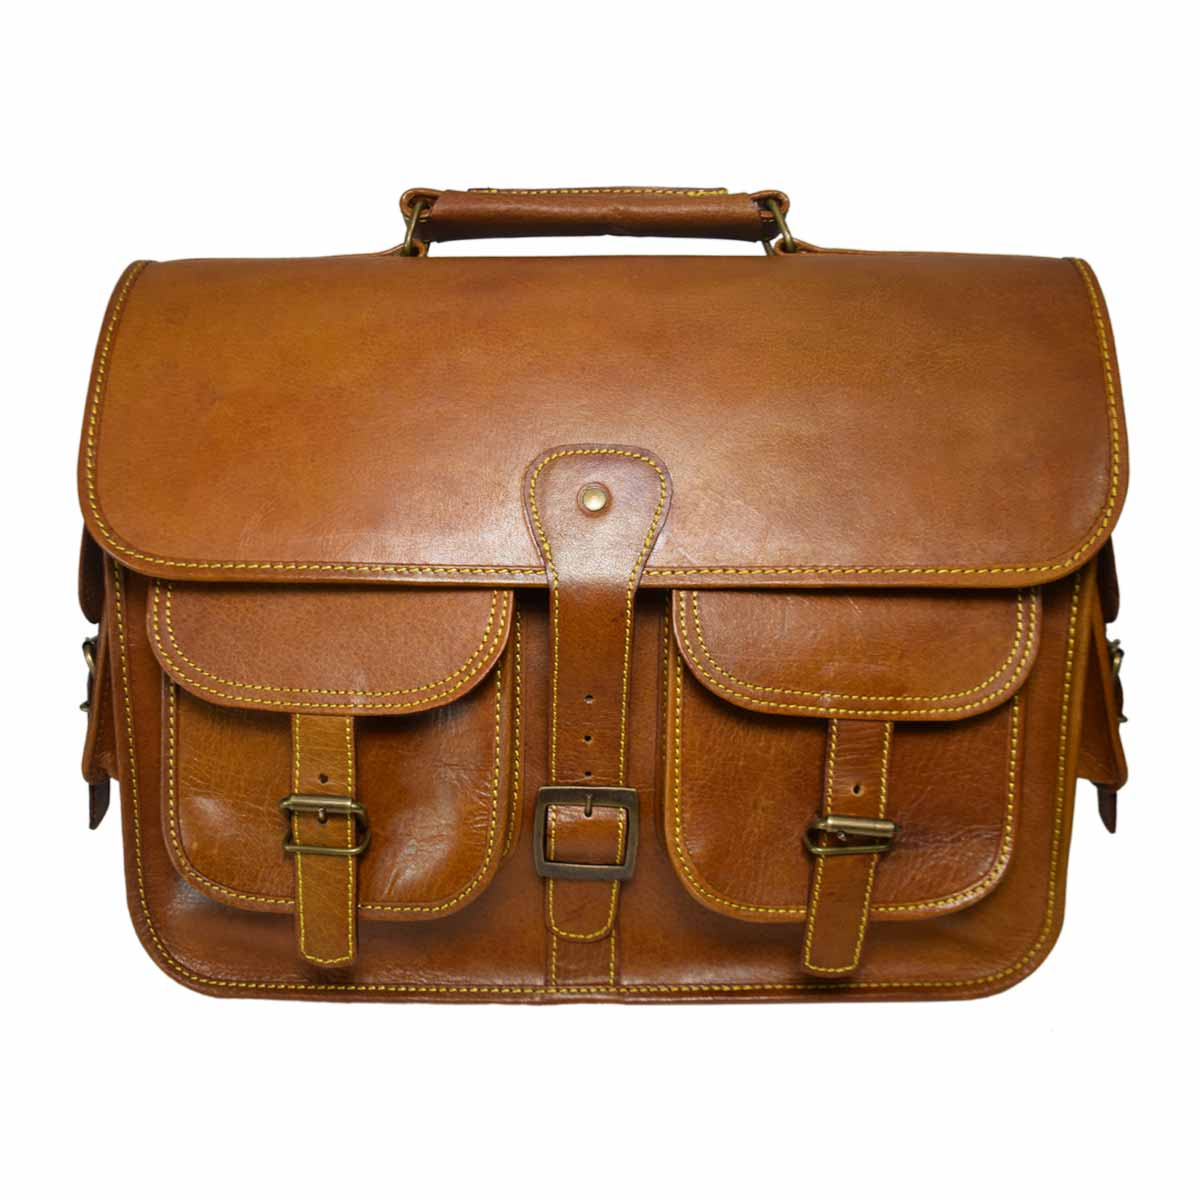 BROWN LAPTOP / MESSENGER BAG FOR 15 INCH LAPTOPS AND ACCESSORIES